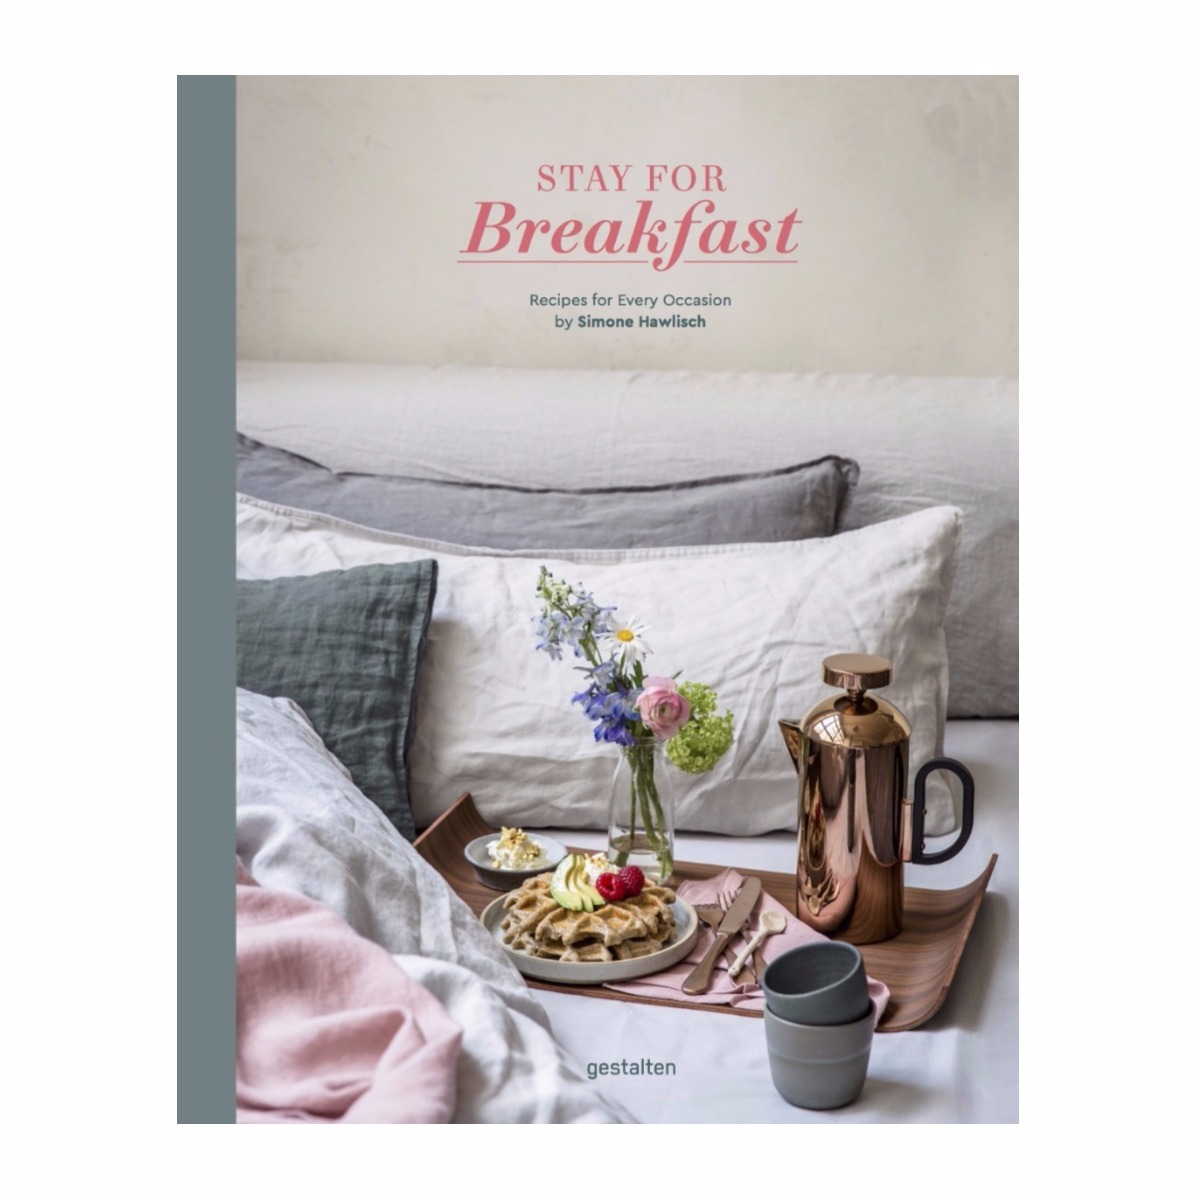 Kochbuch Stay for Breakfast von Simone Hawlisch (1)